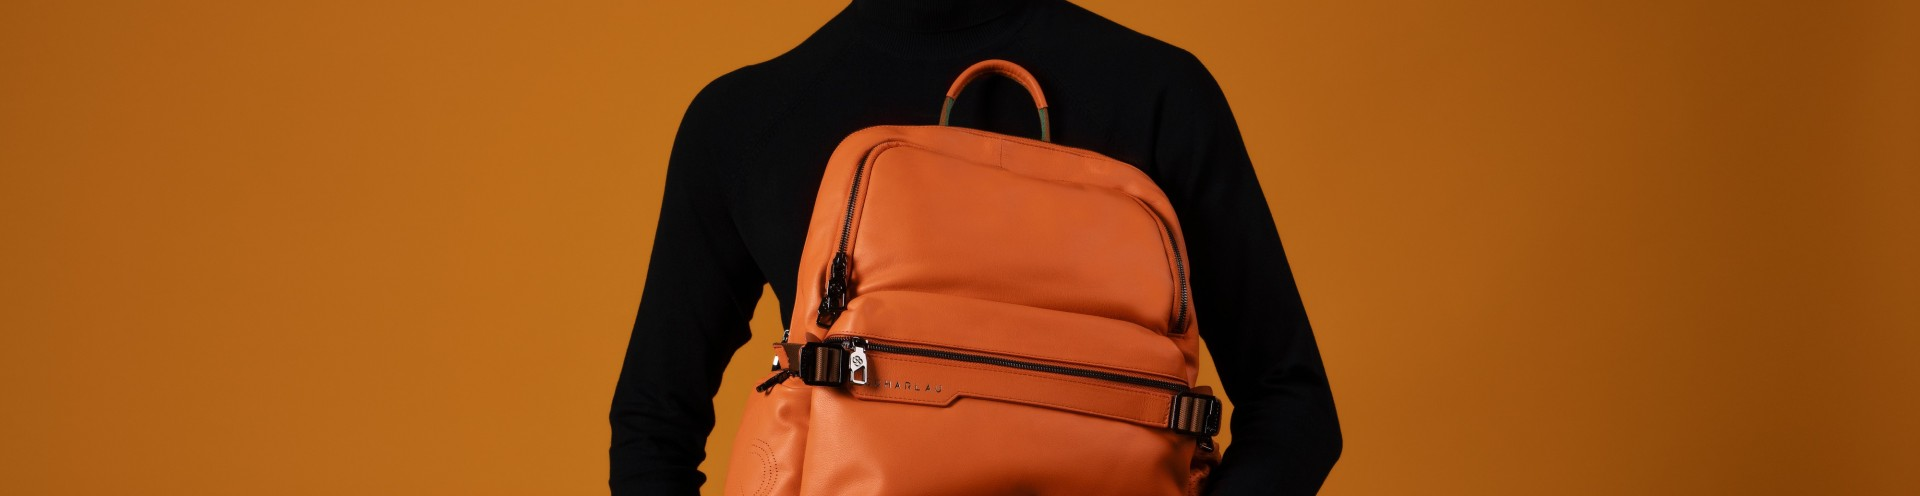 Men's Personalized Leather or Nylon Backpacks